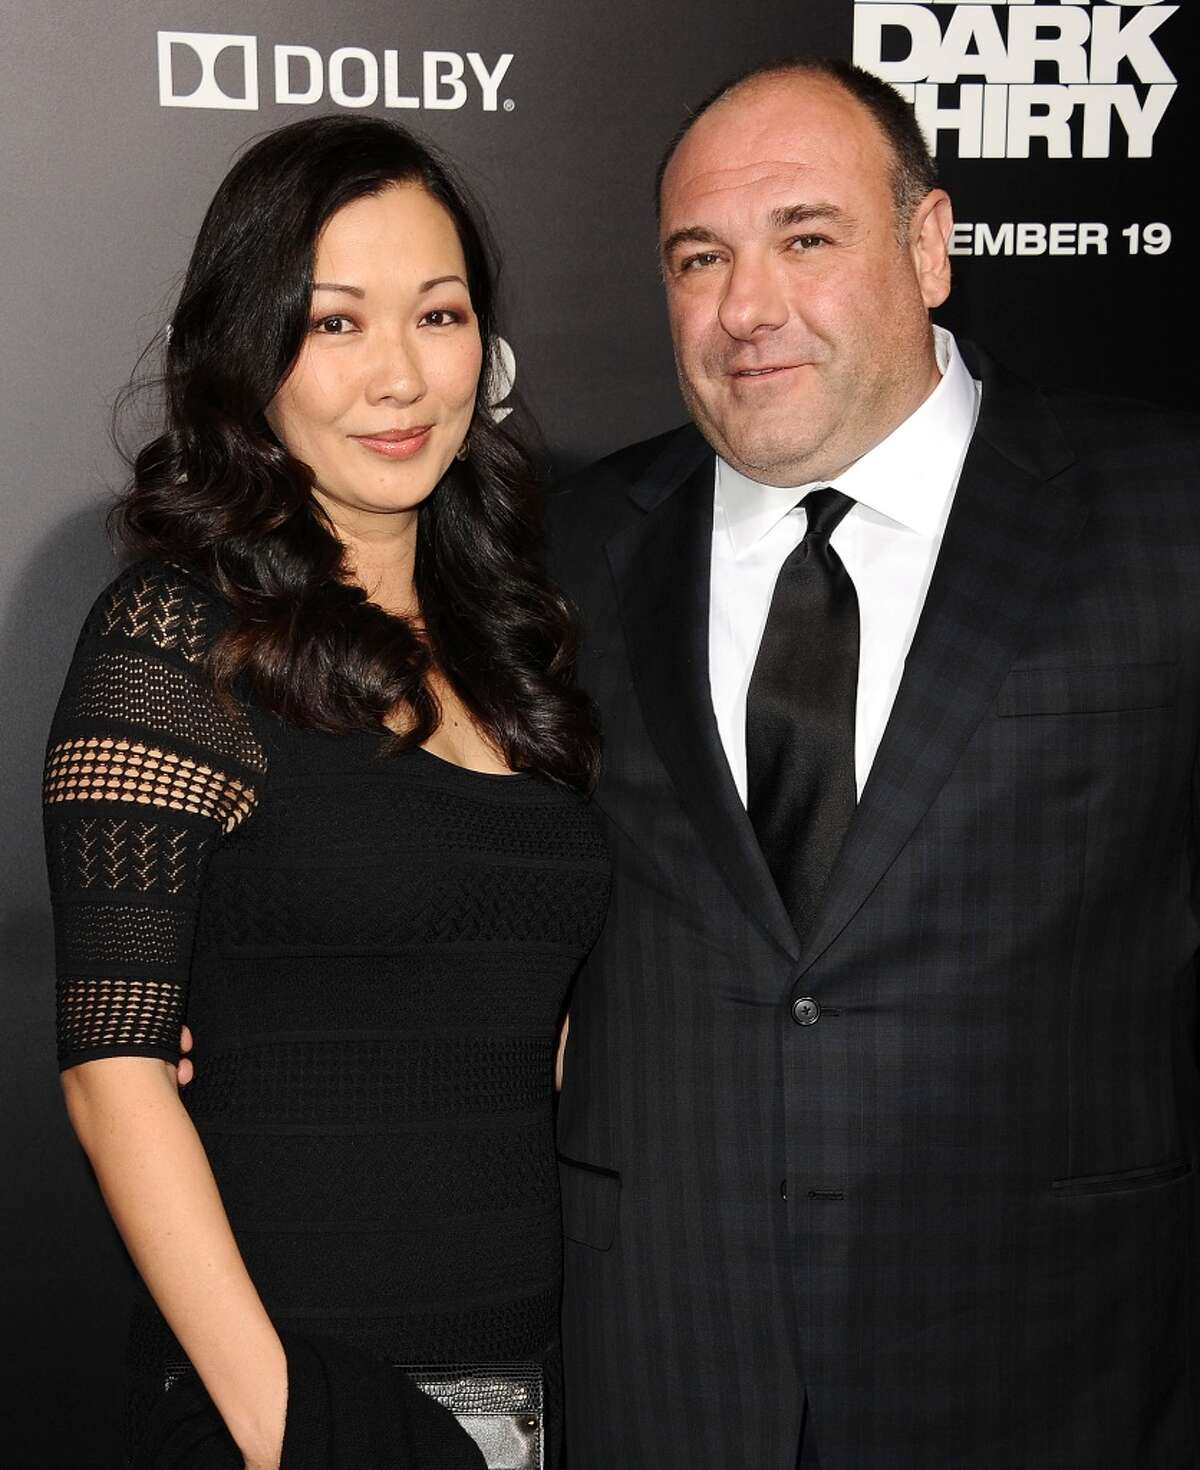 """Actor James Gandolfini (R) and wife Deborah Lin attend the premiere of """"Zero Dark Thirty"""" at the Dolby Theatre on December 10, 2012 in Hollywood, California. (Photo by Jason LaVeris/FilmMagic)"""